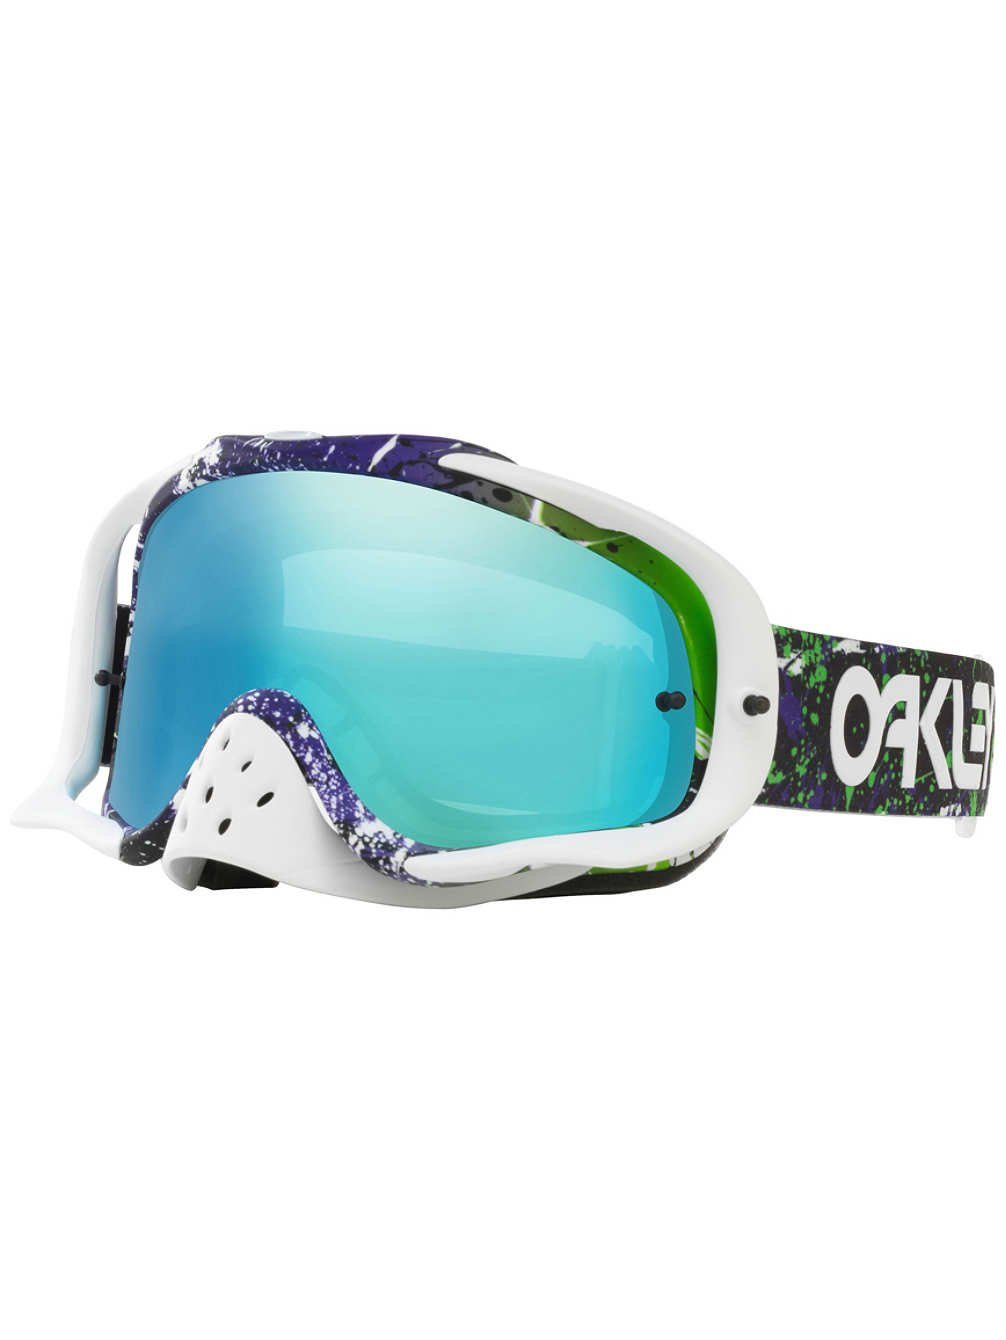 Oakley Crowbar MX FP Splatter Men's Dirt Off-Road Motorcycle Goggles Eyewear - Green Purple/Violet + Clear / One Size Fits All